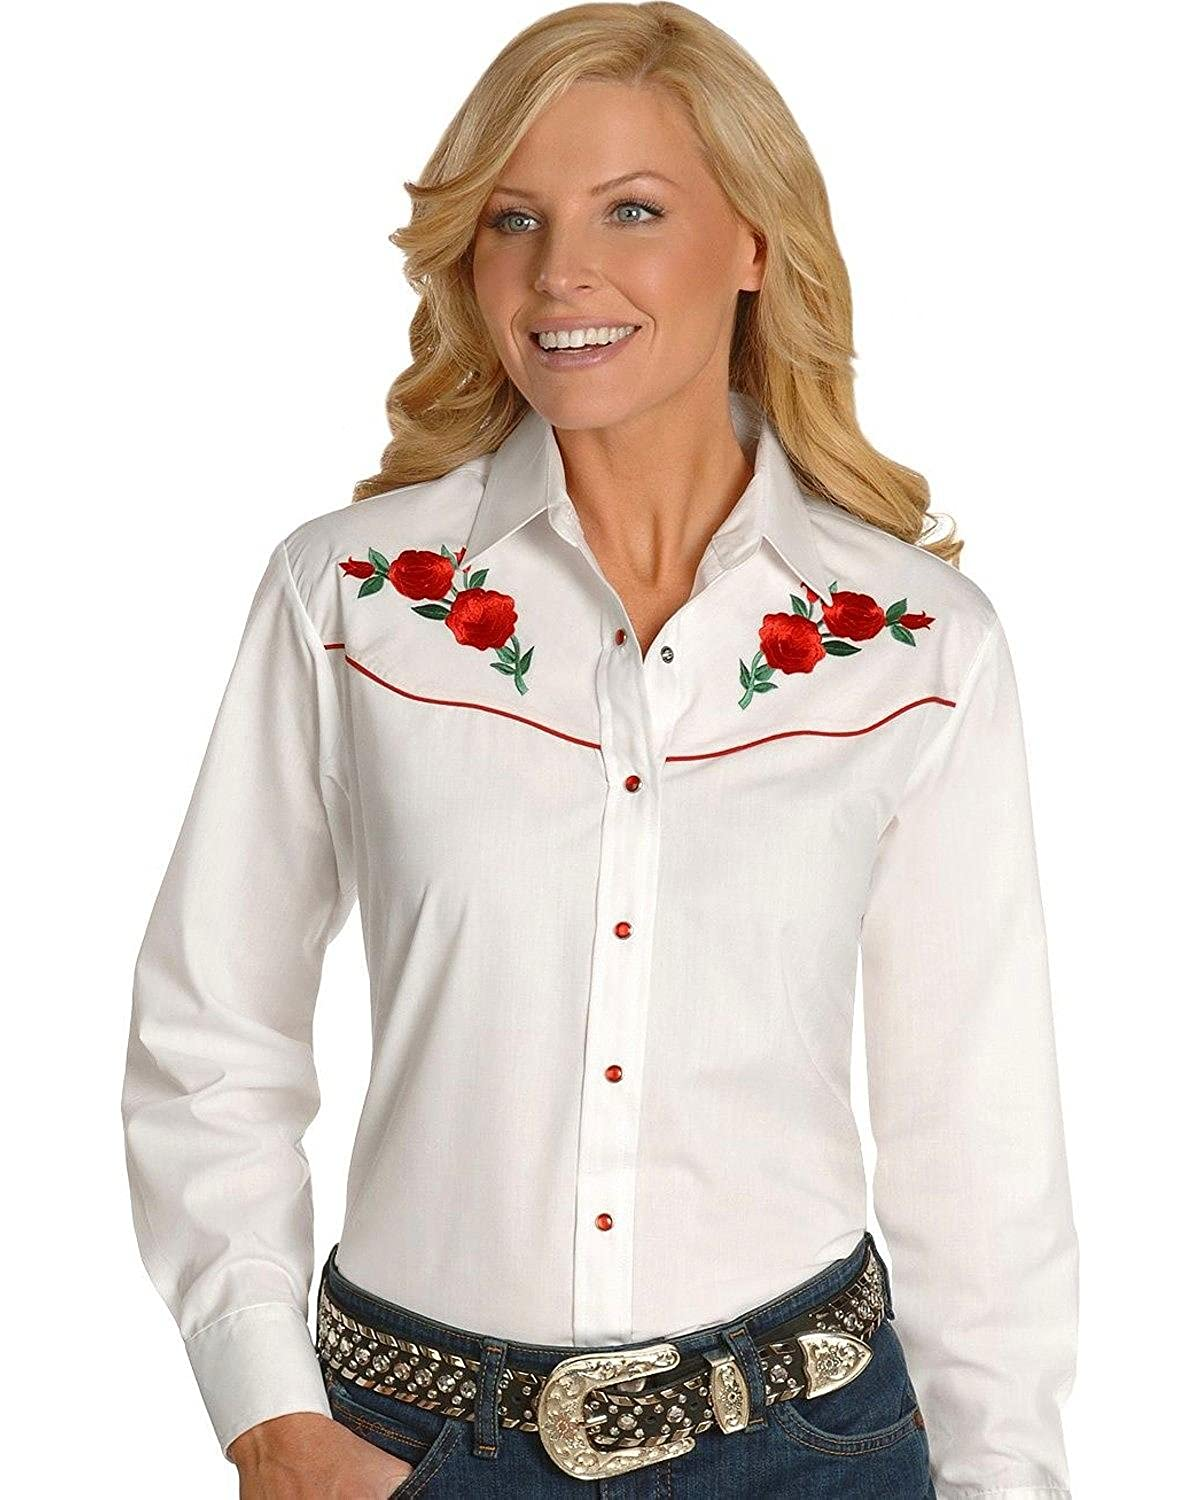 b200ee3f Ely Cattleman Women's Embroidered Roses Vintage Western Cowboy Shirt -  303801Asst